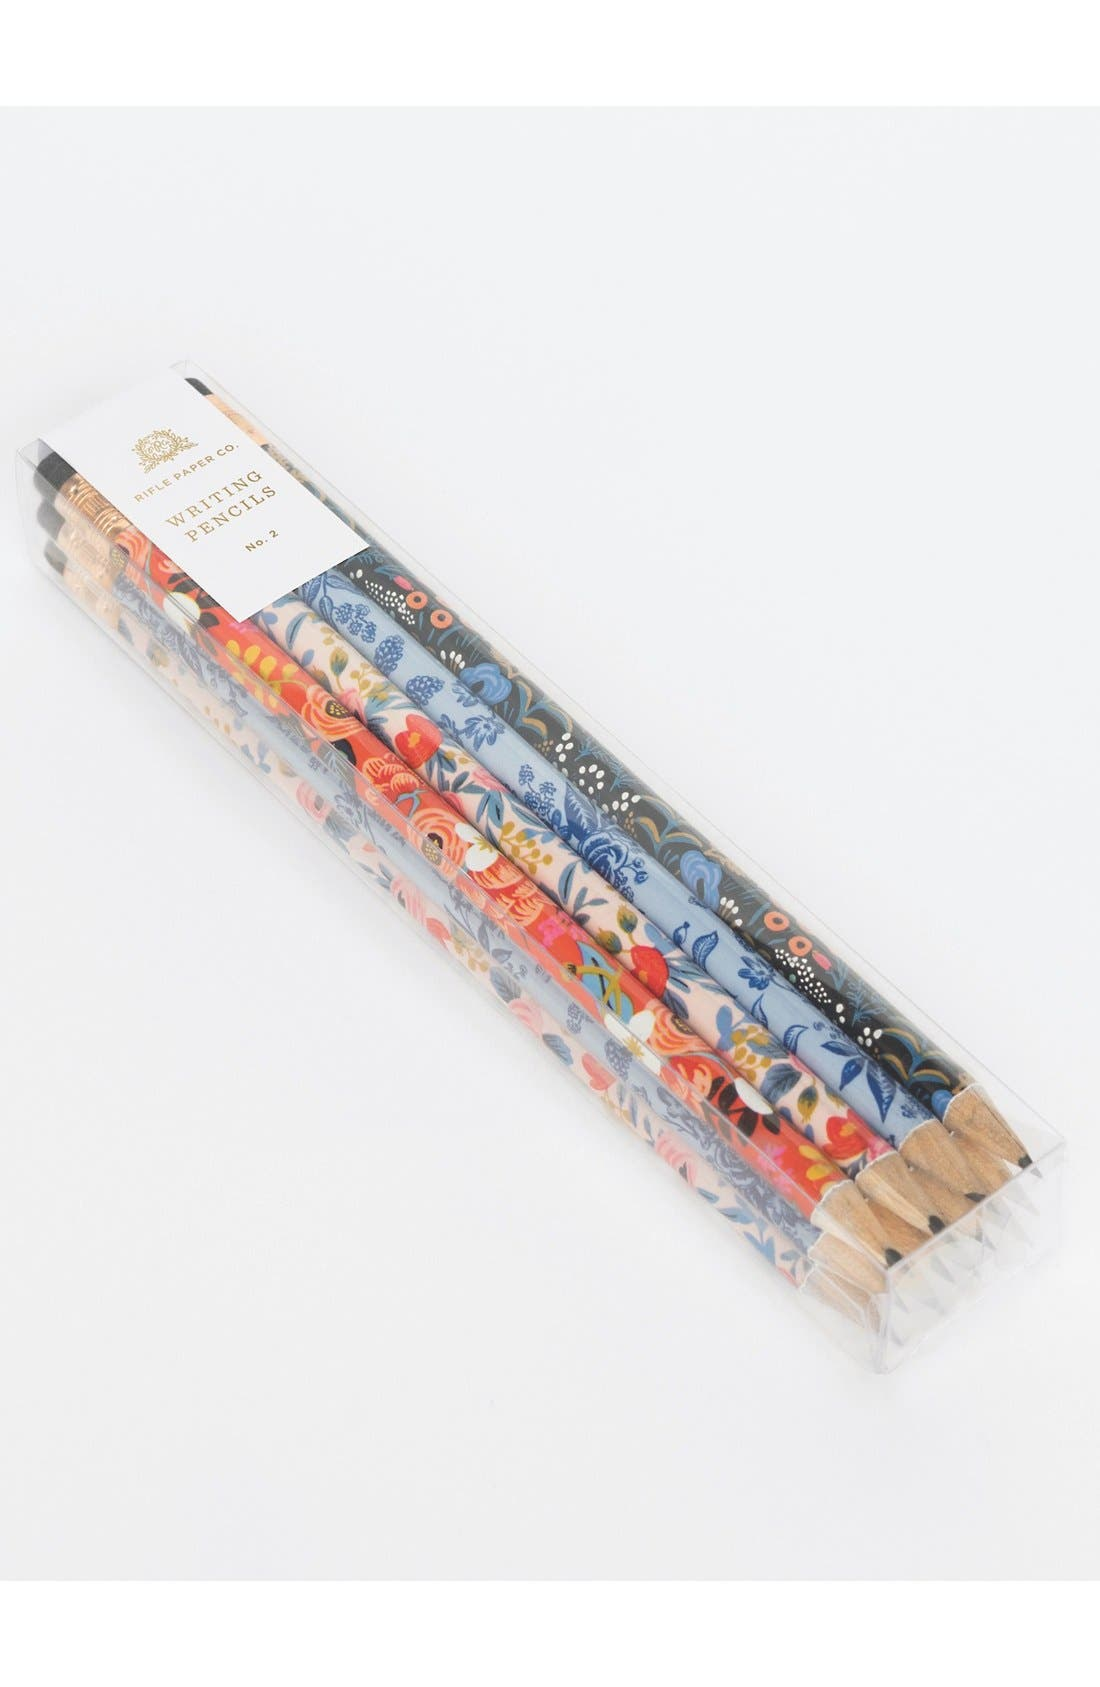 Rifle Paper Co. Floral Pencils (12-Pack)